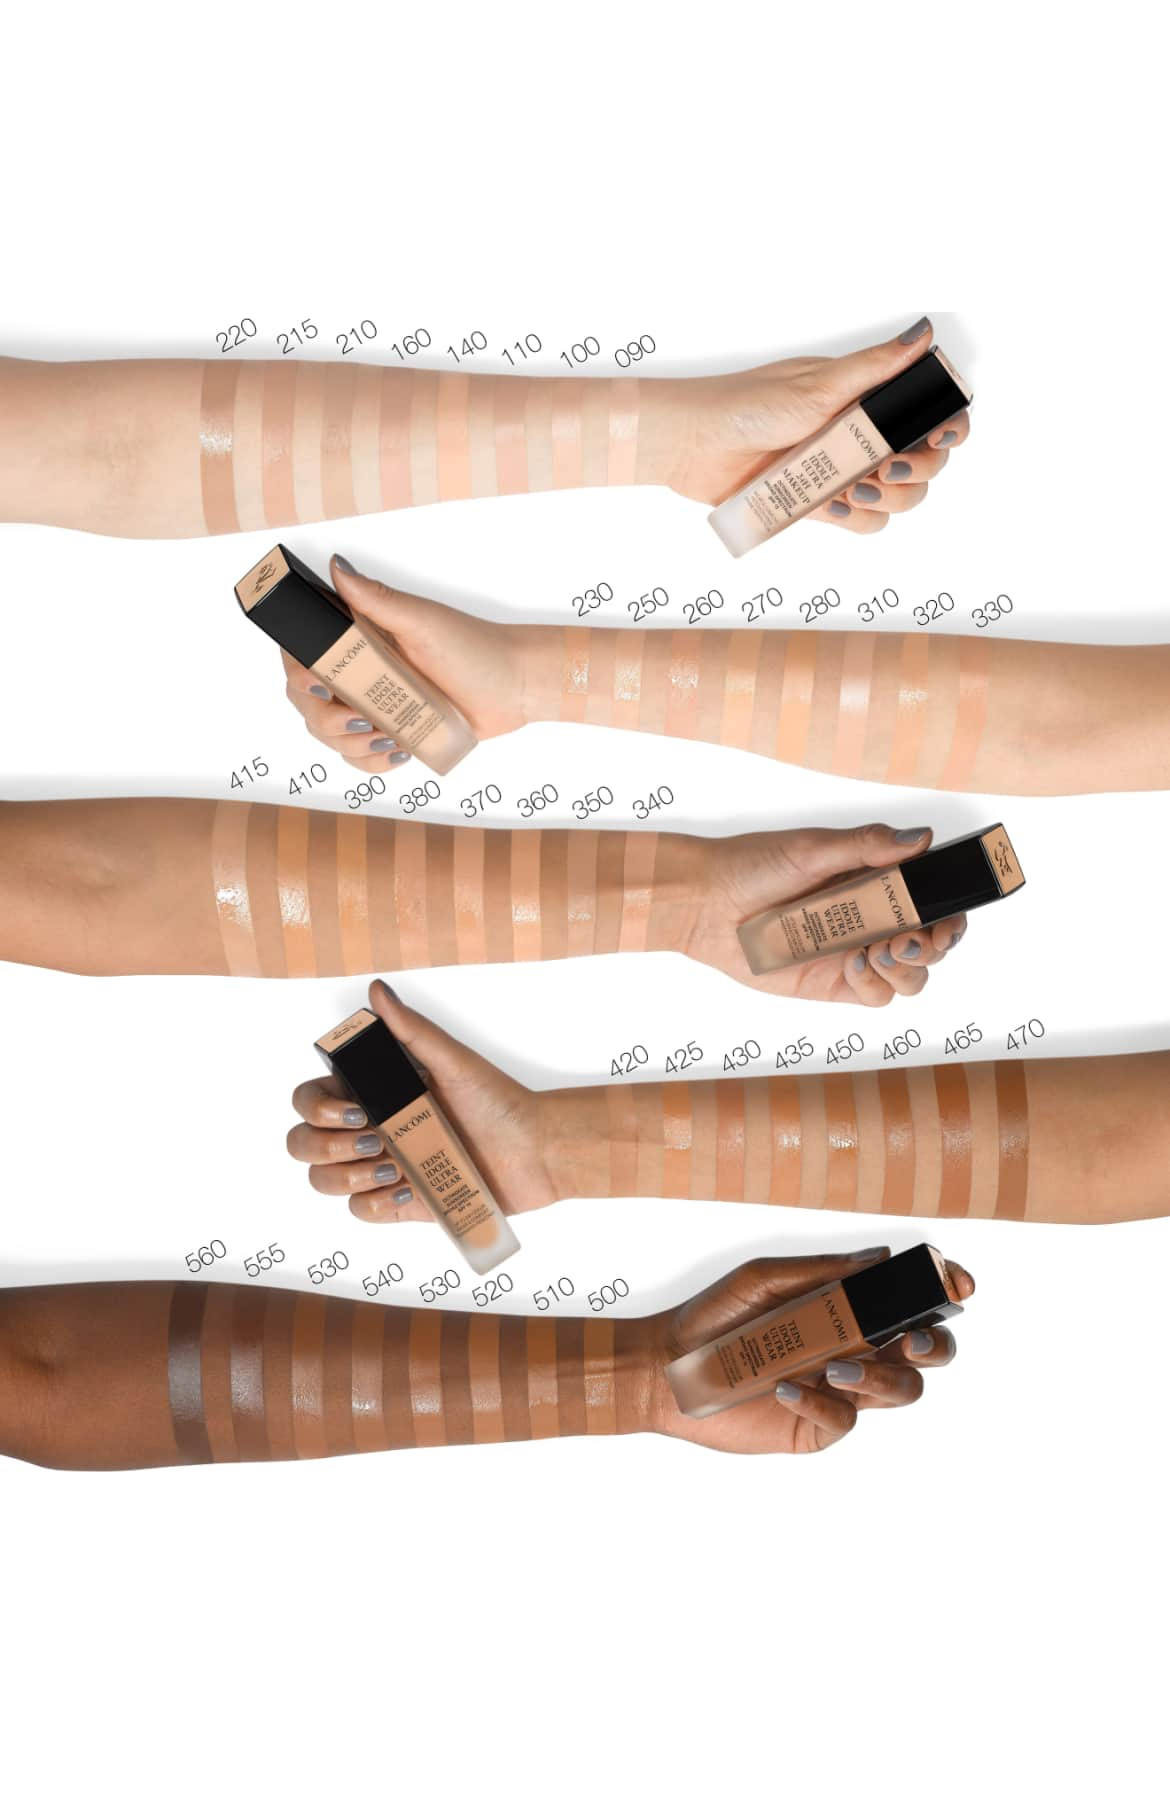 9886f734 0e38 410d b729 f362133c7a75 - Top 5 Most Popular Foundations of 2020 for All Skin Types